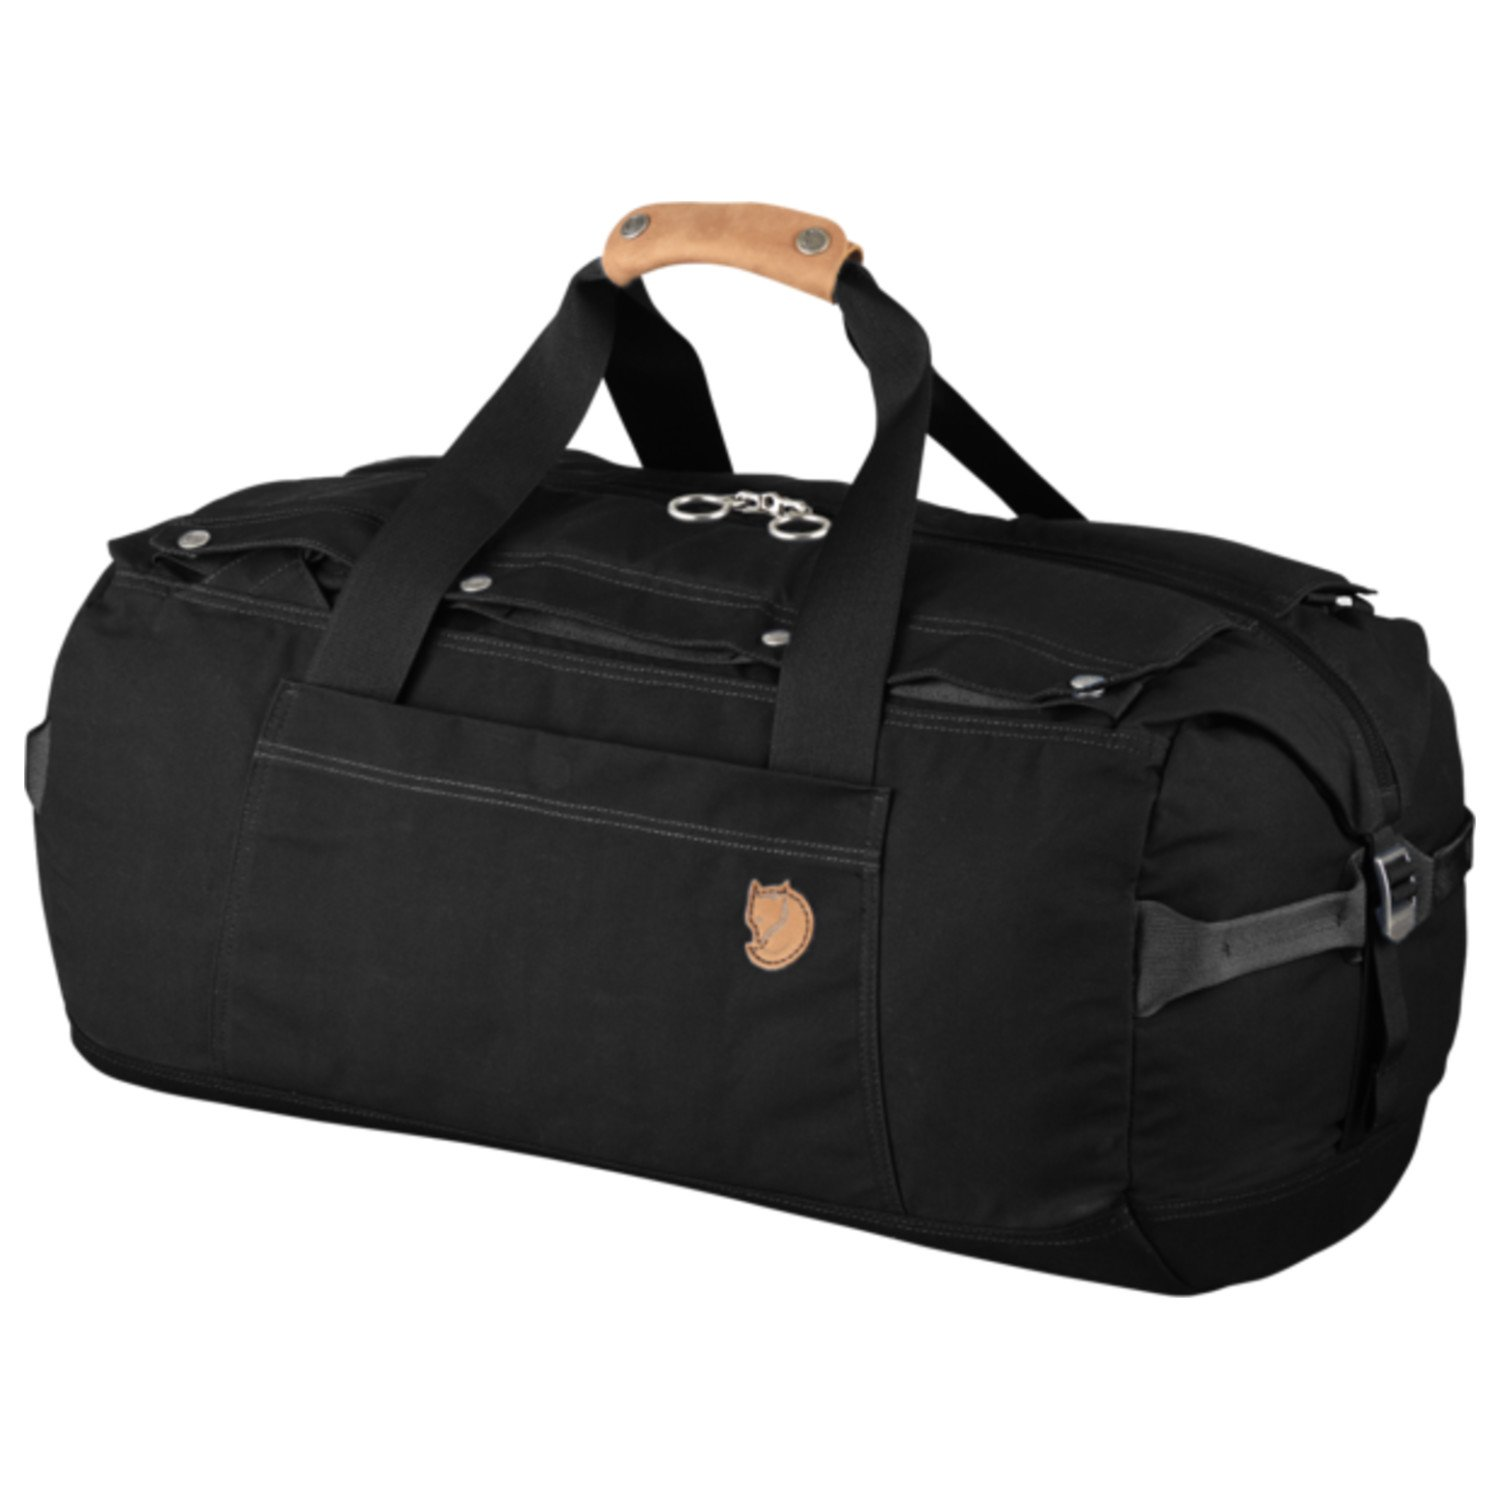 Fjallraven Duffel No. 6 Bag, Black, Large